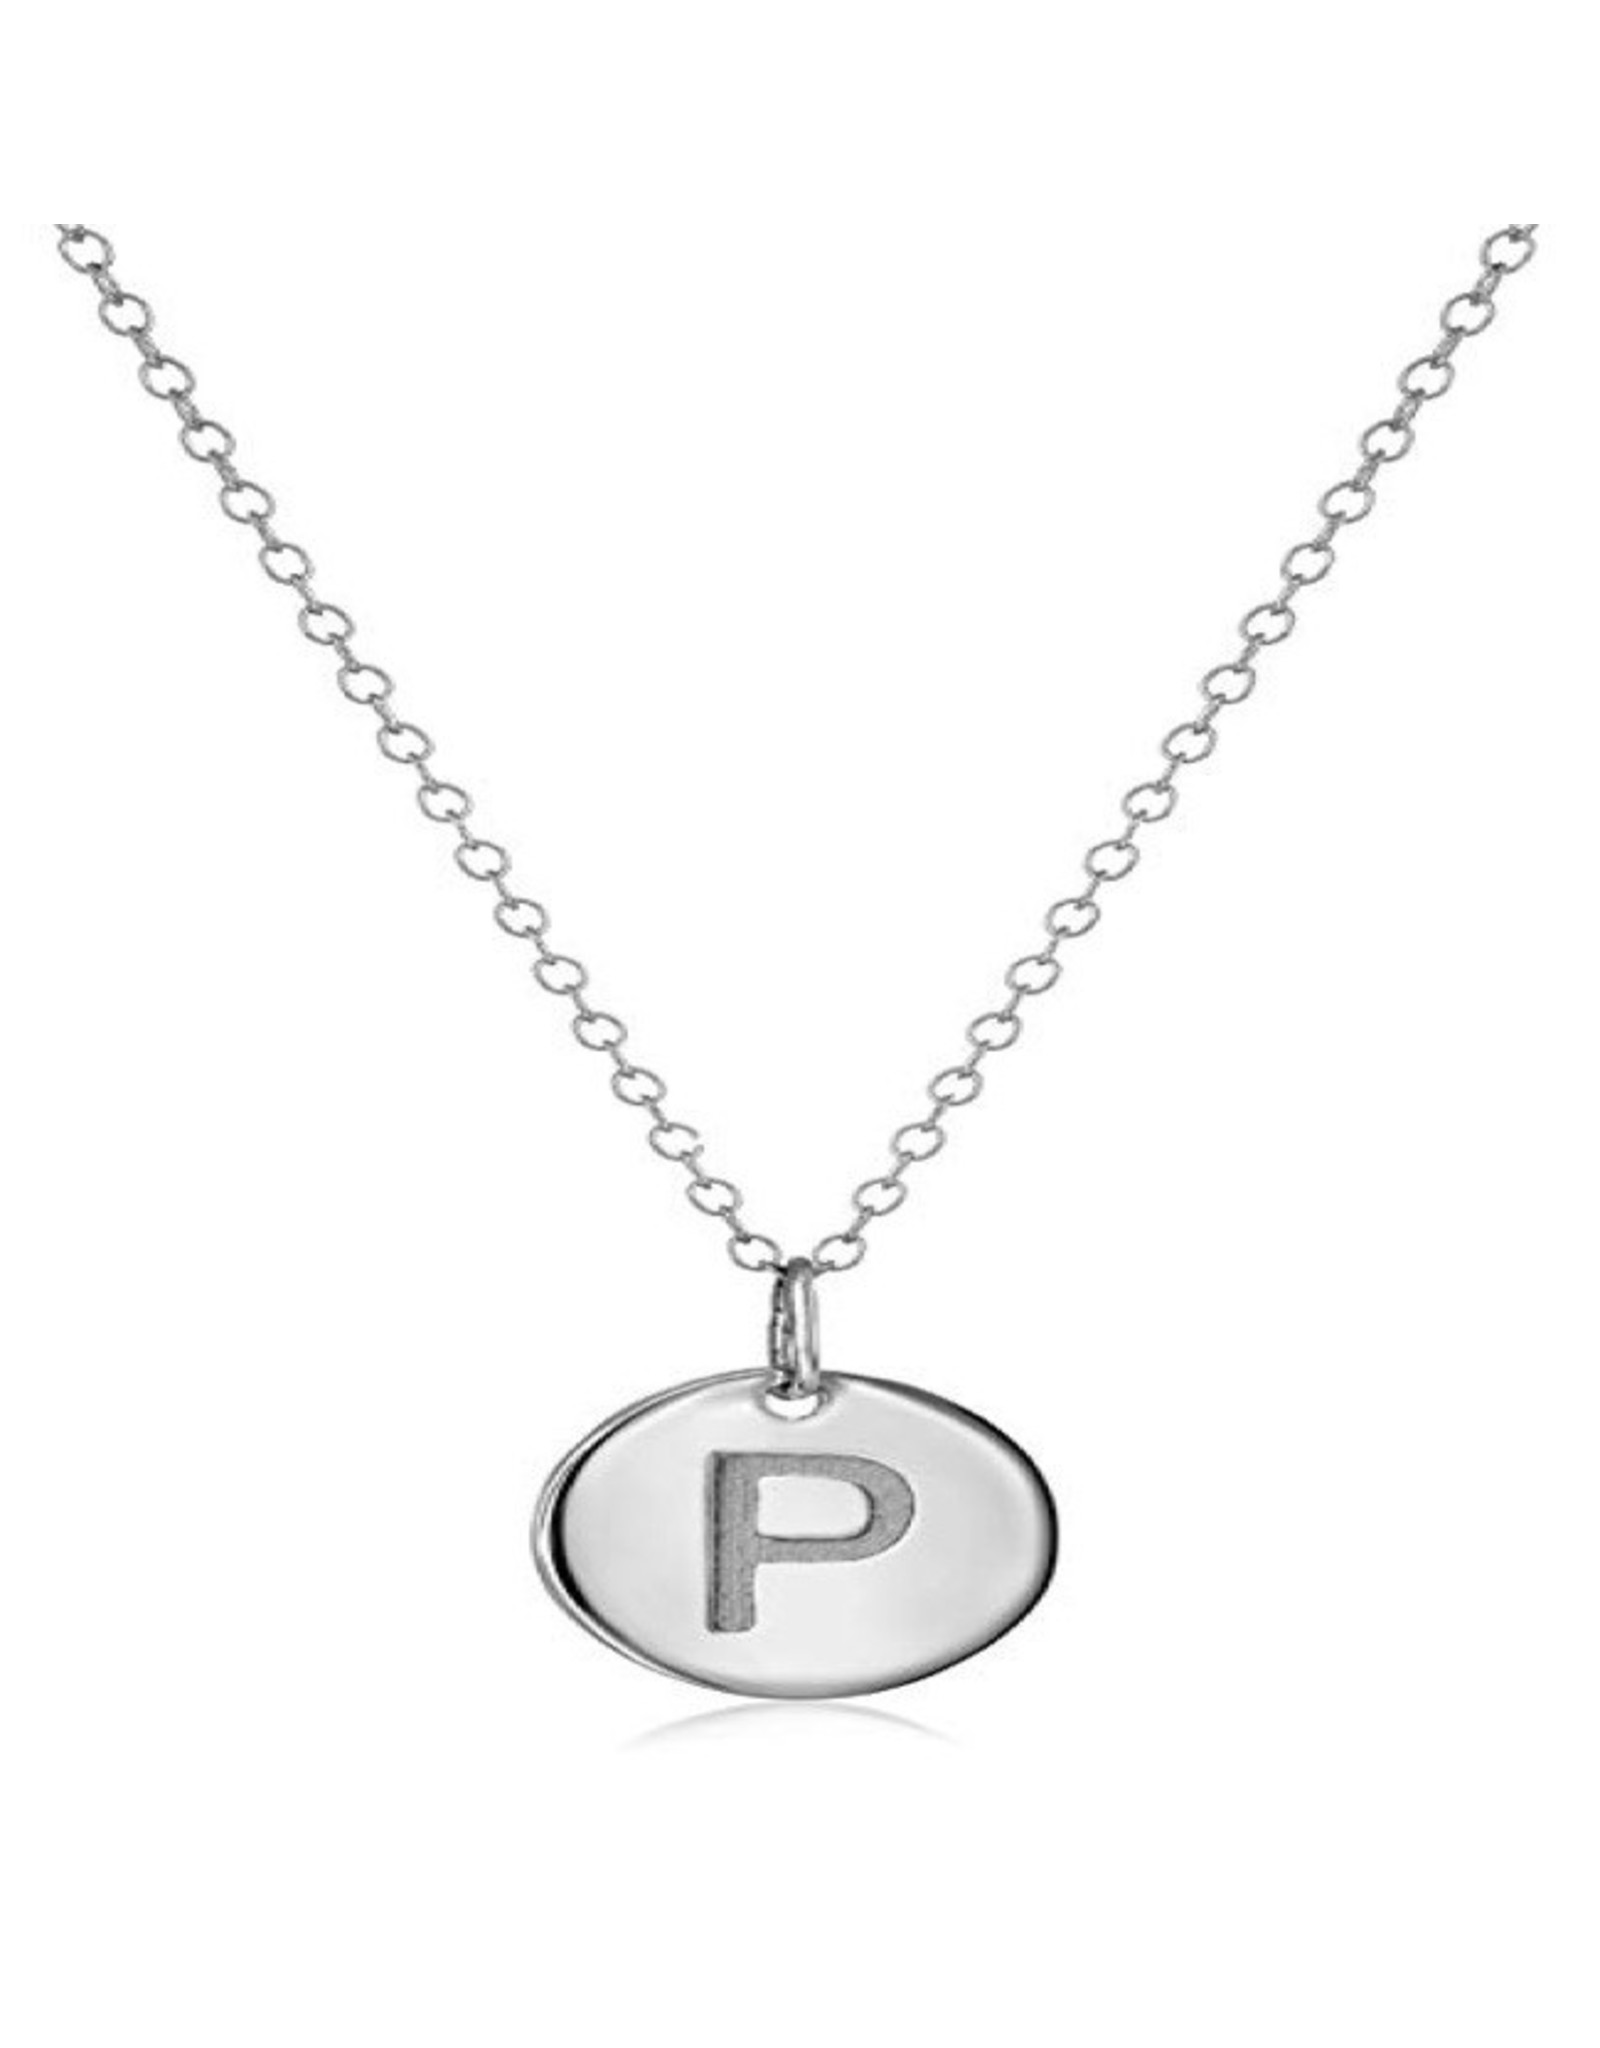 Necklace - Dainty Disc W/ Initial (Silver) (P)